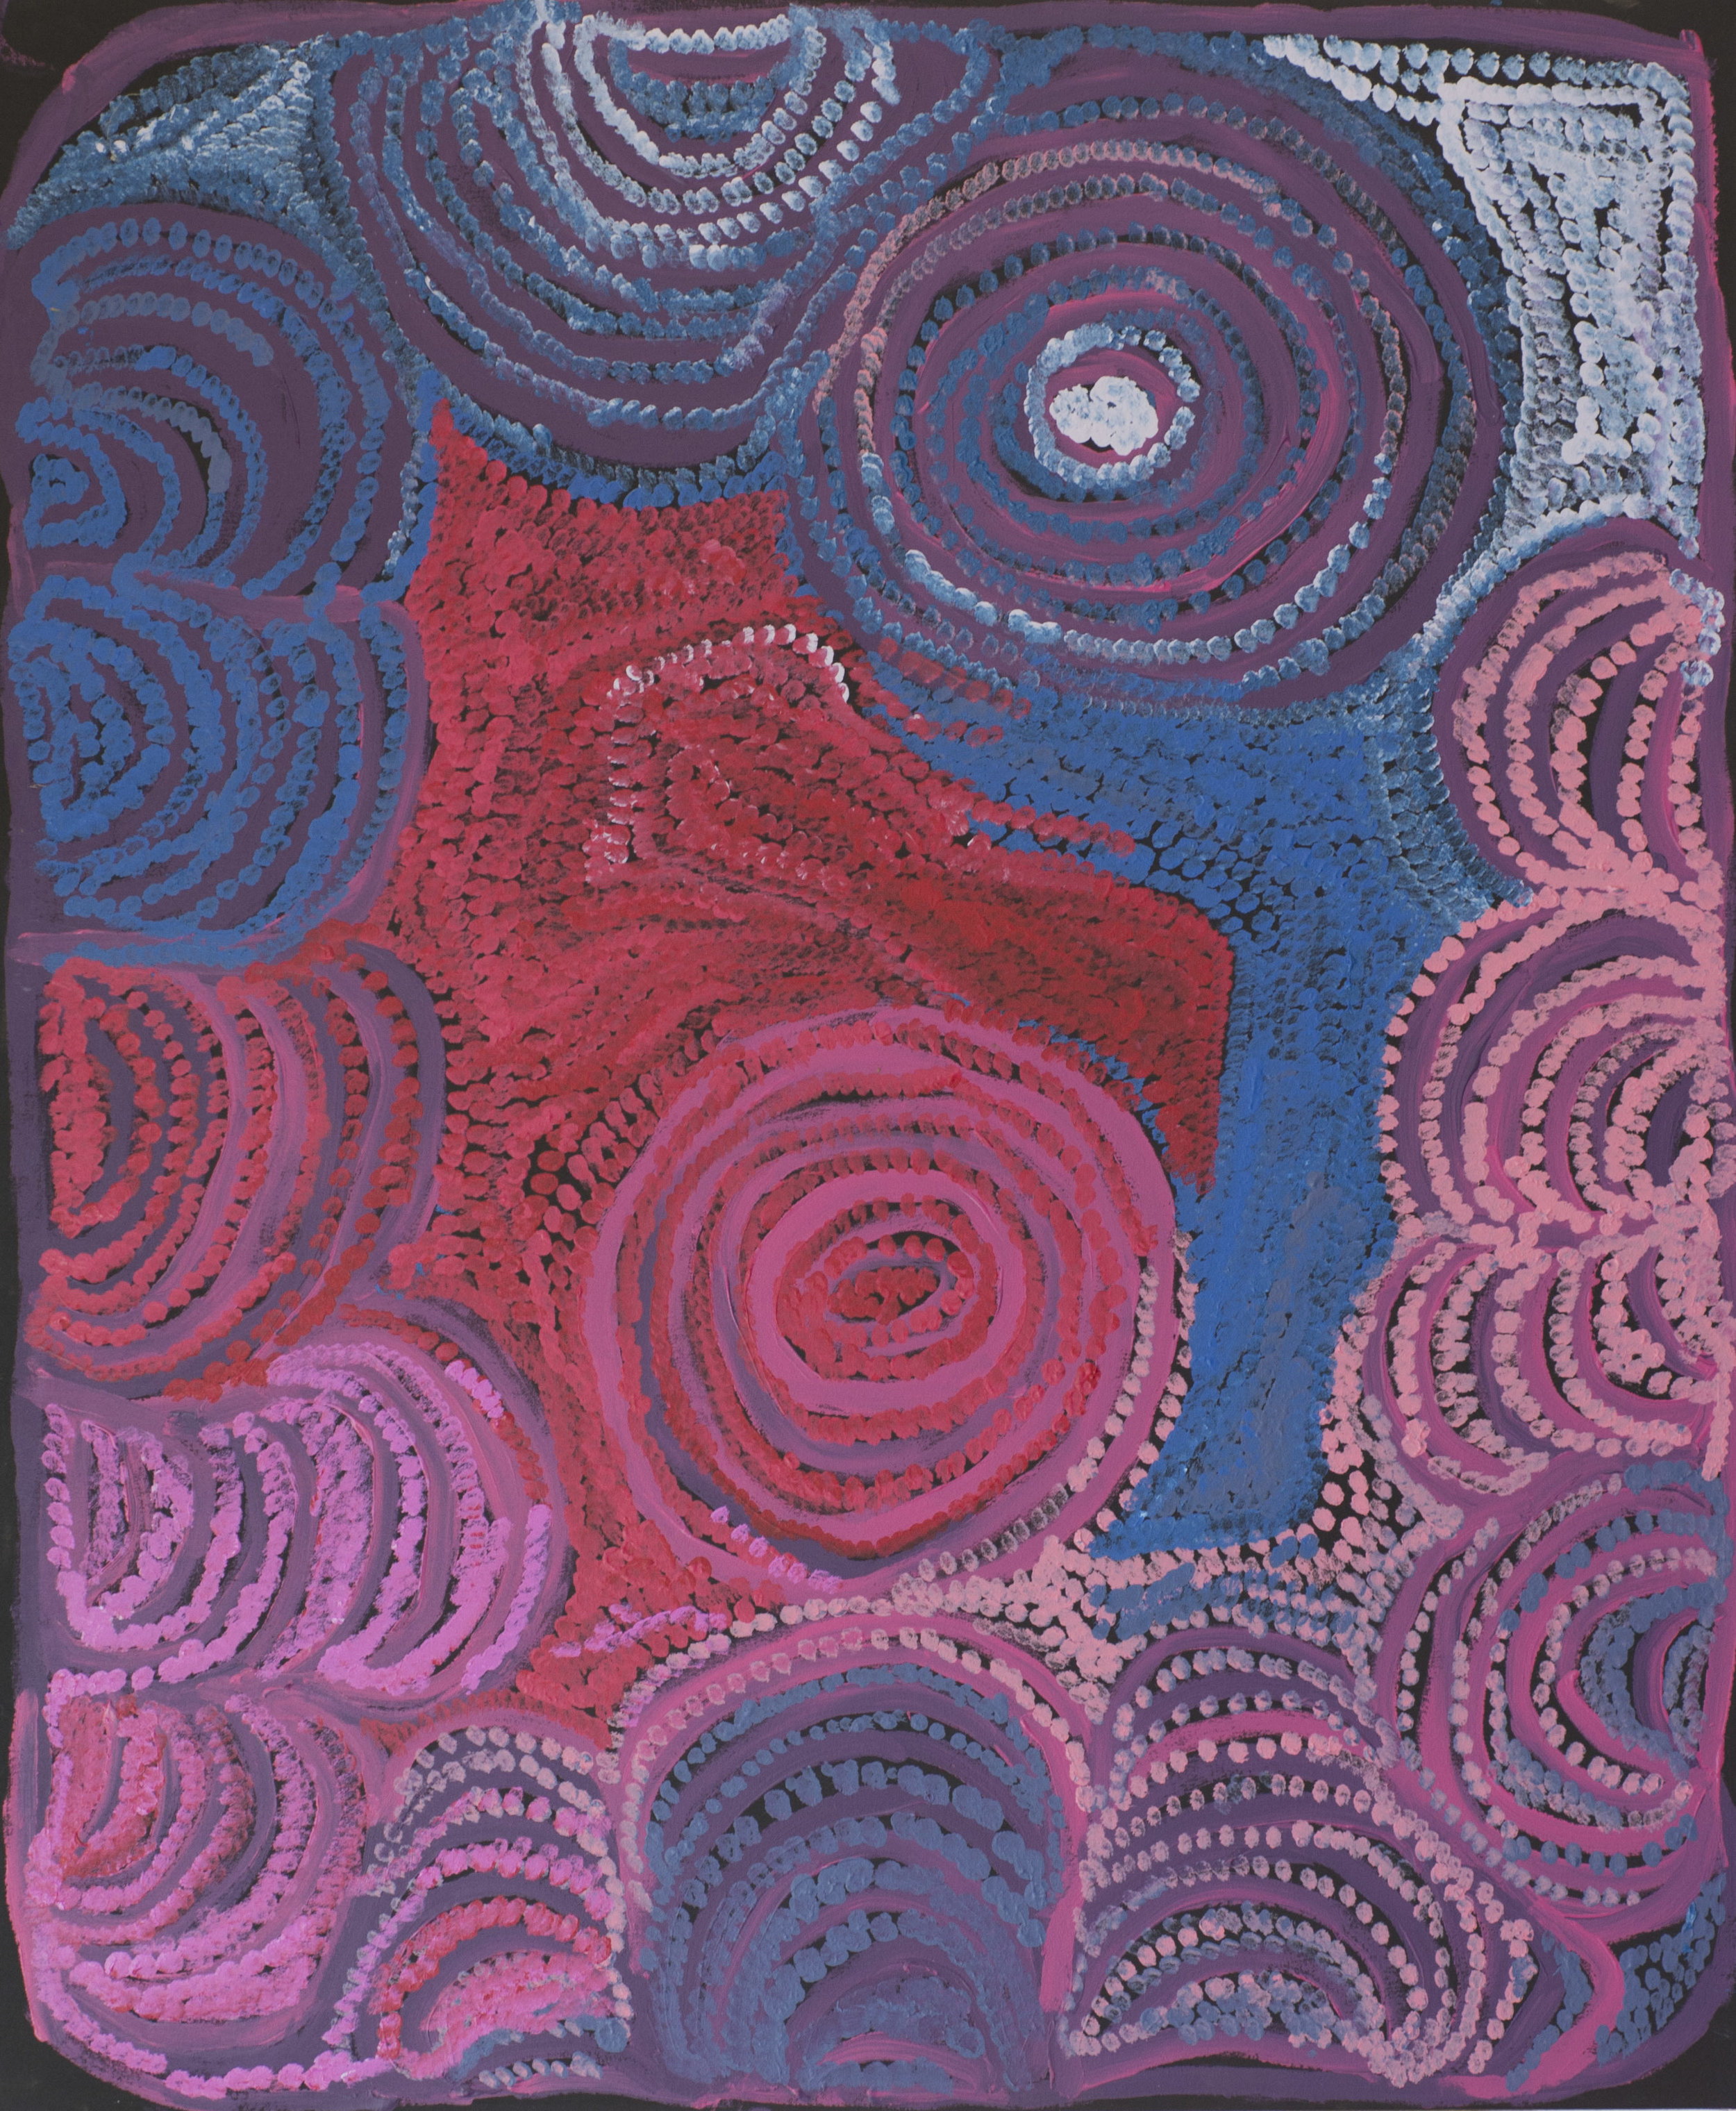 Nyarapayi Giles  Warmurrungu  Acrylic on canvas 47 x 39 inches (121 x 101 cm) Tjarlirli Arts Catalog #15-586   EMAIL INQUIRY